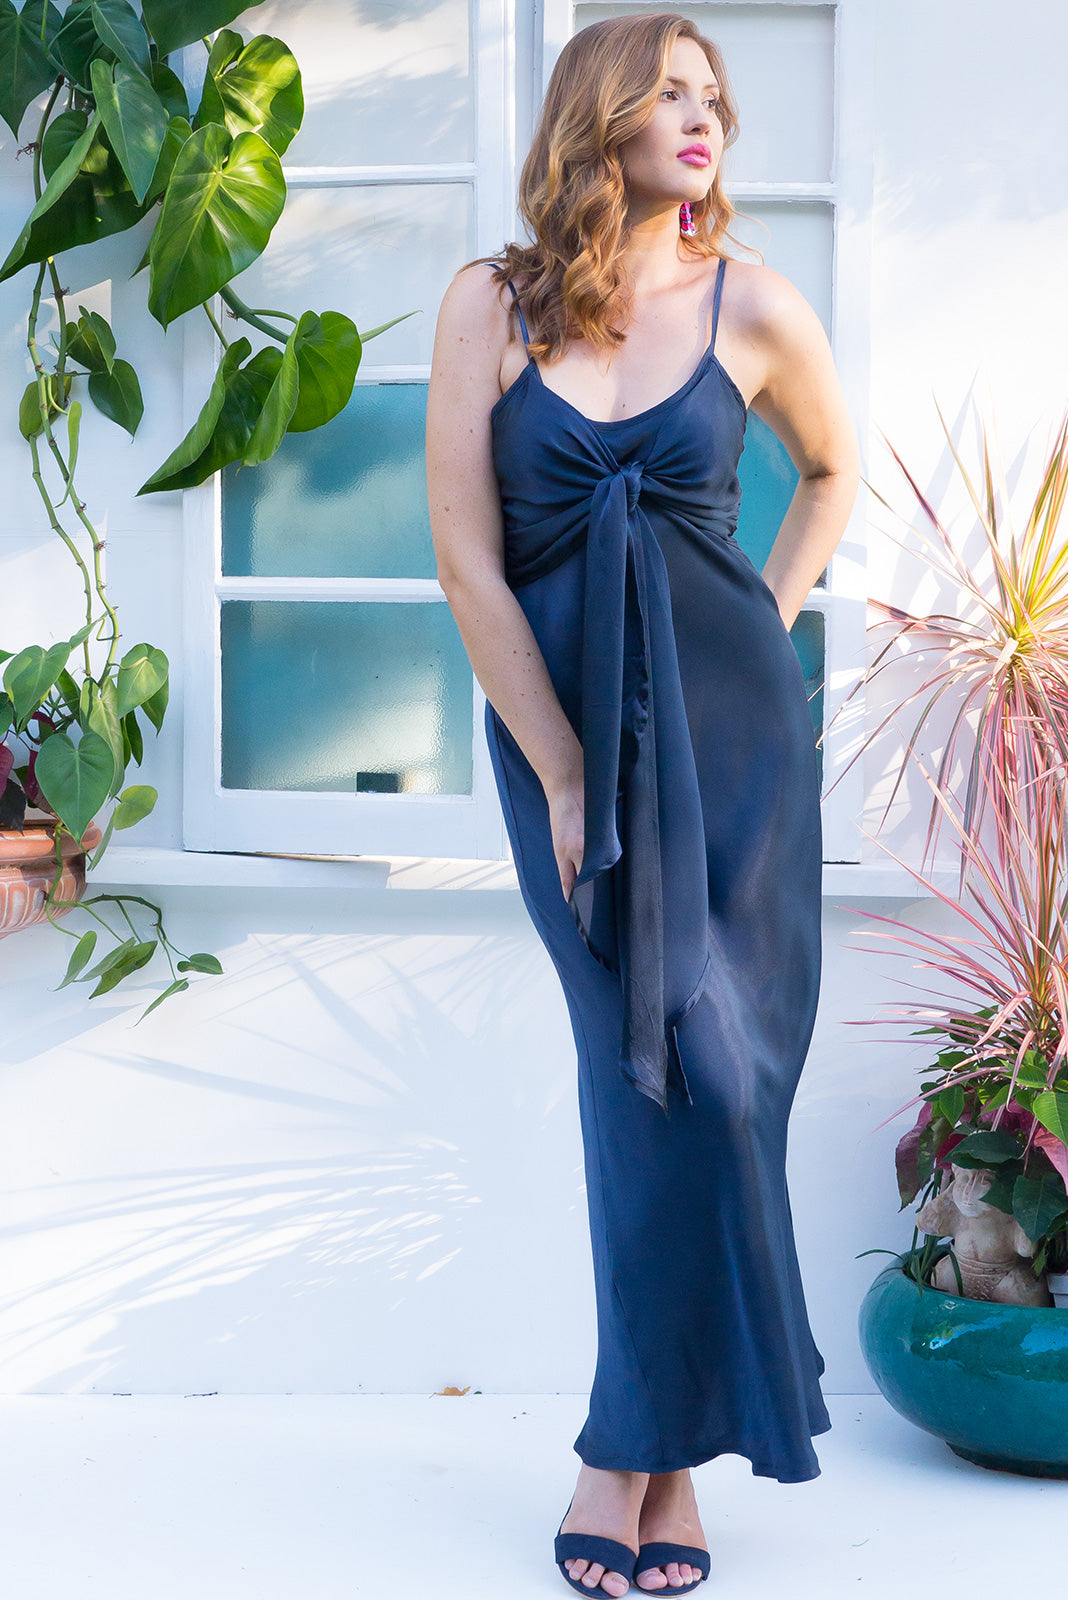 Venus Midnight Blue bias cut satin crepe maxi dress with a front tie and adjustable straps in dark navy